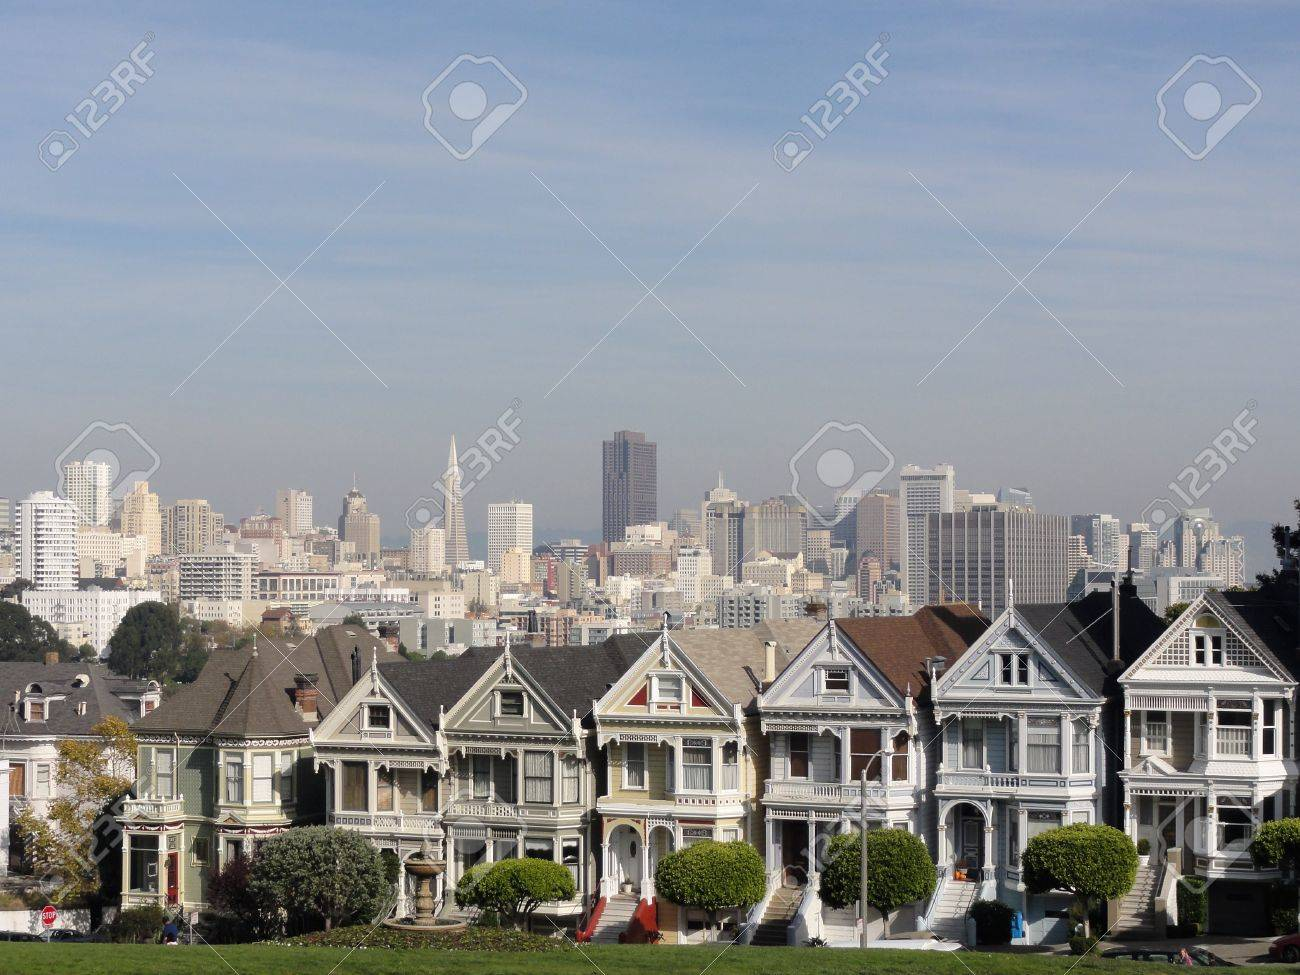 Painted Ladies of San Francisco in California. Stock Photo - 14686075